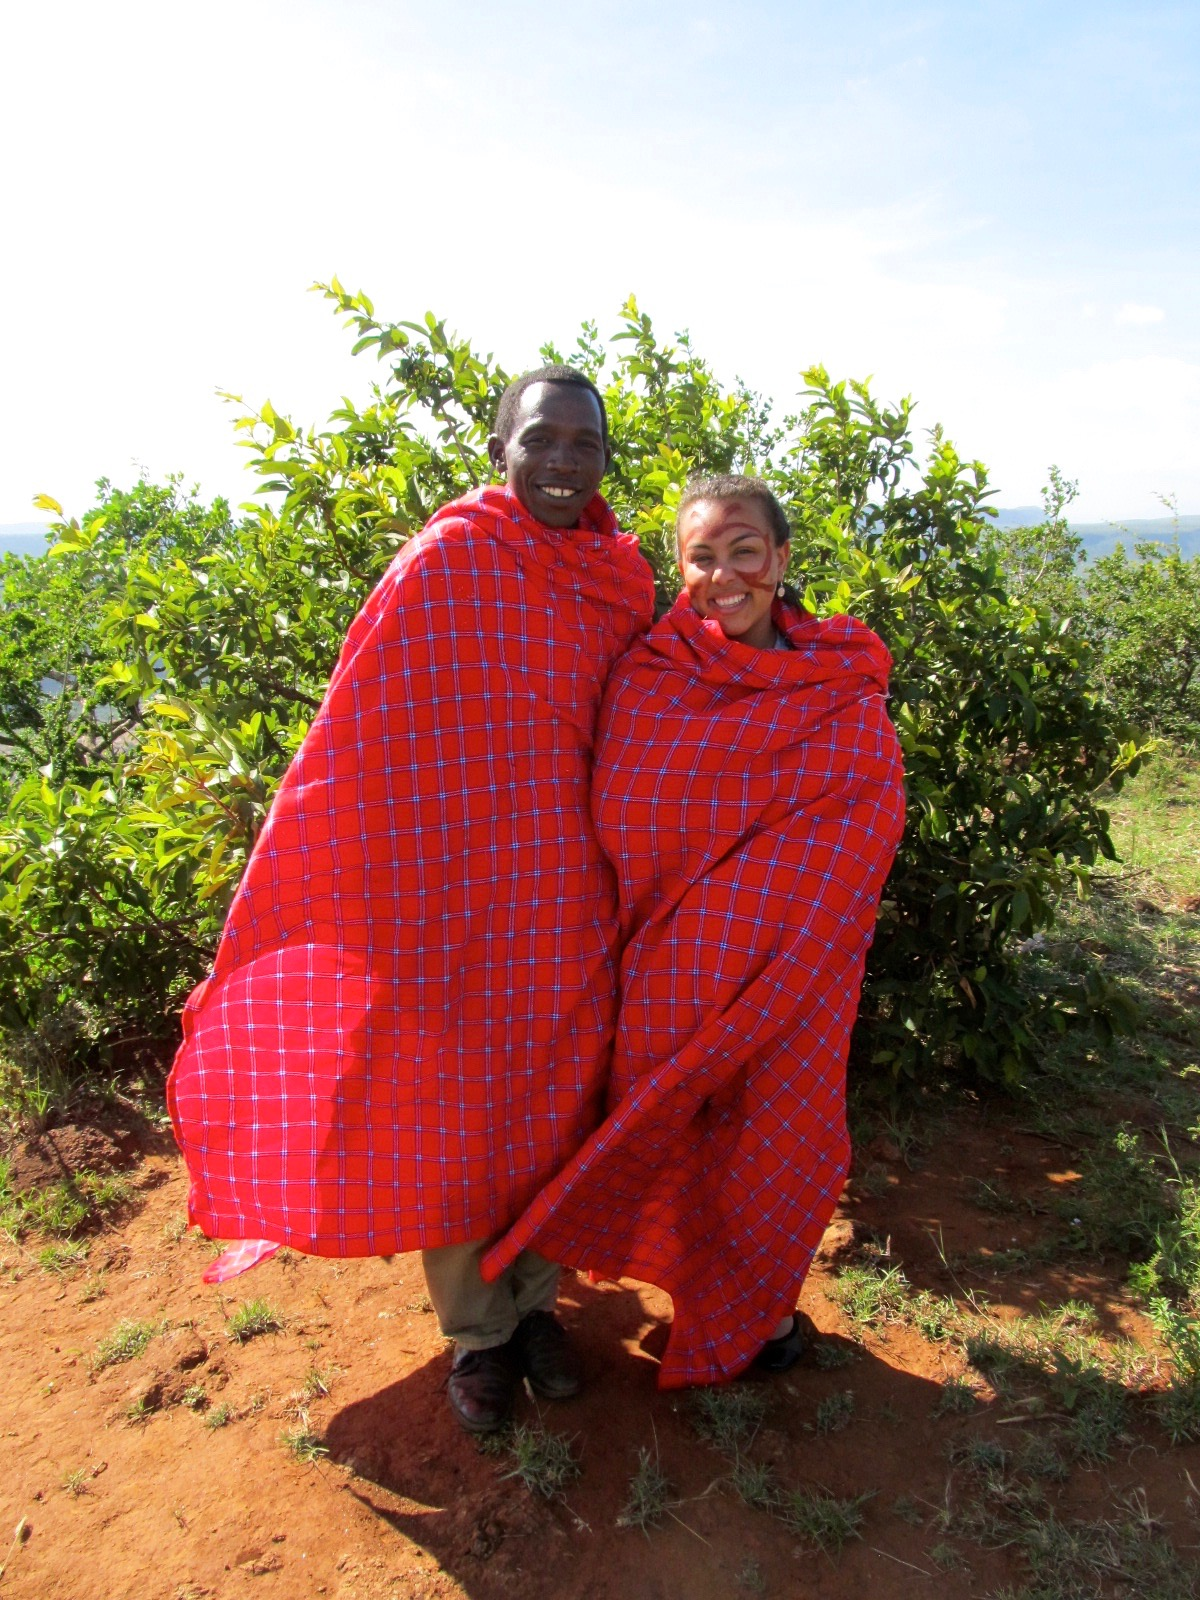 Making friends with the local Maasai in Kenya! Alternative accommodation.